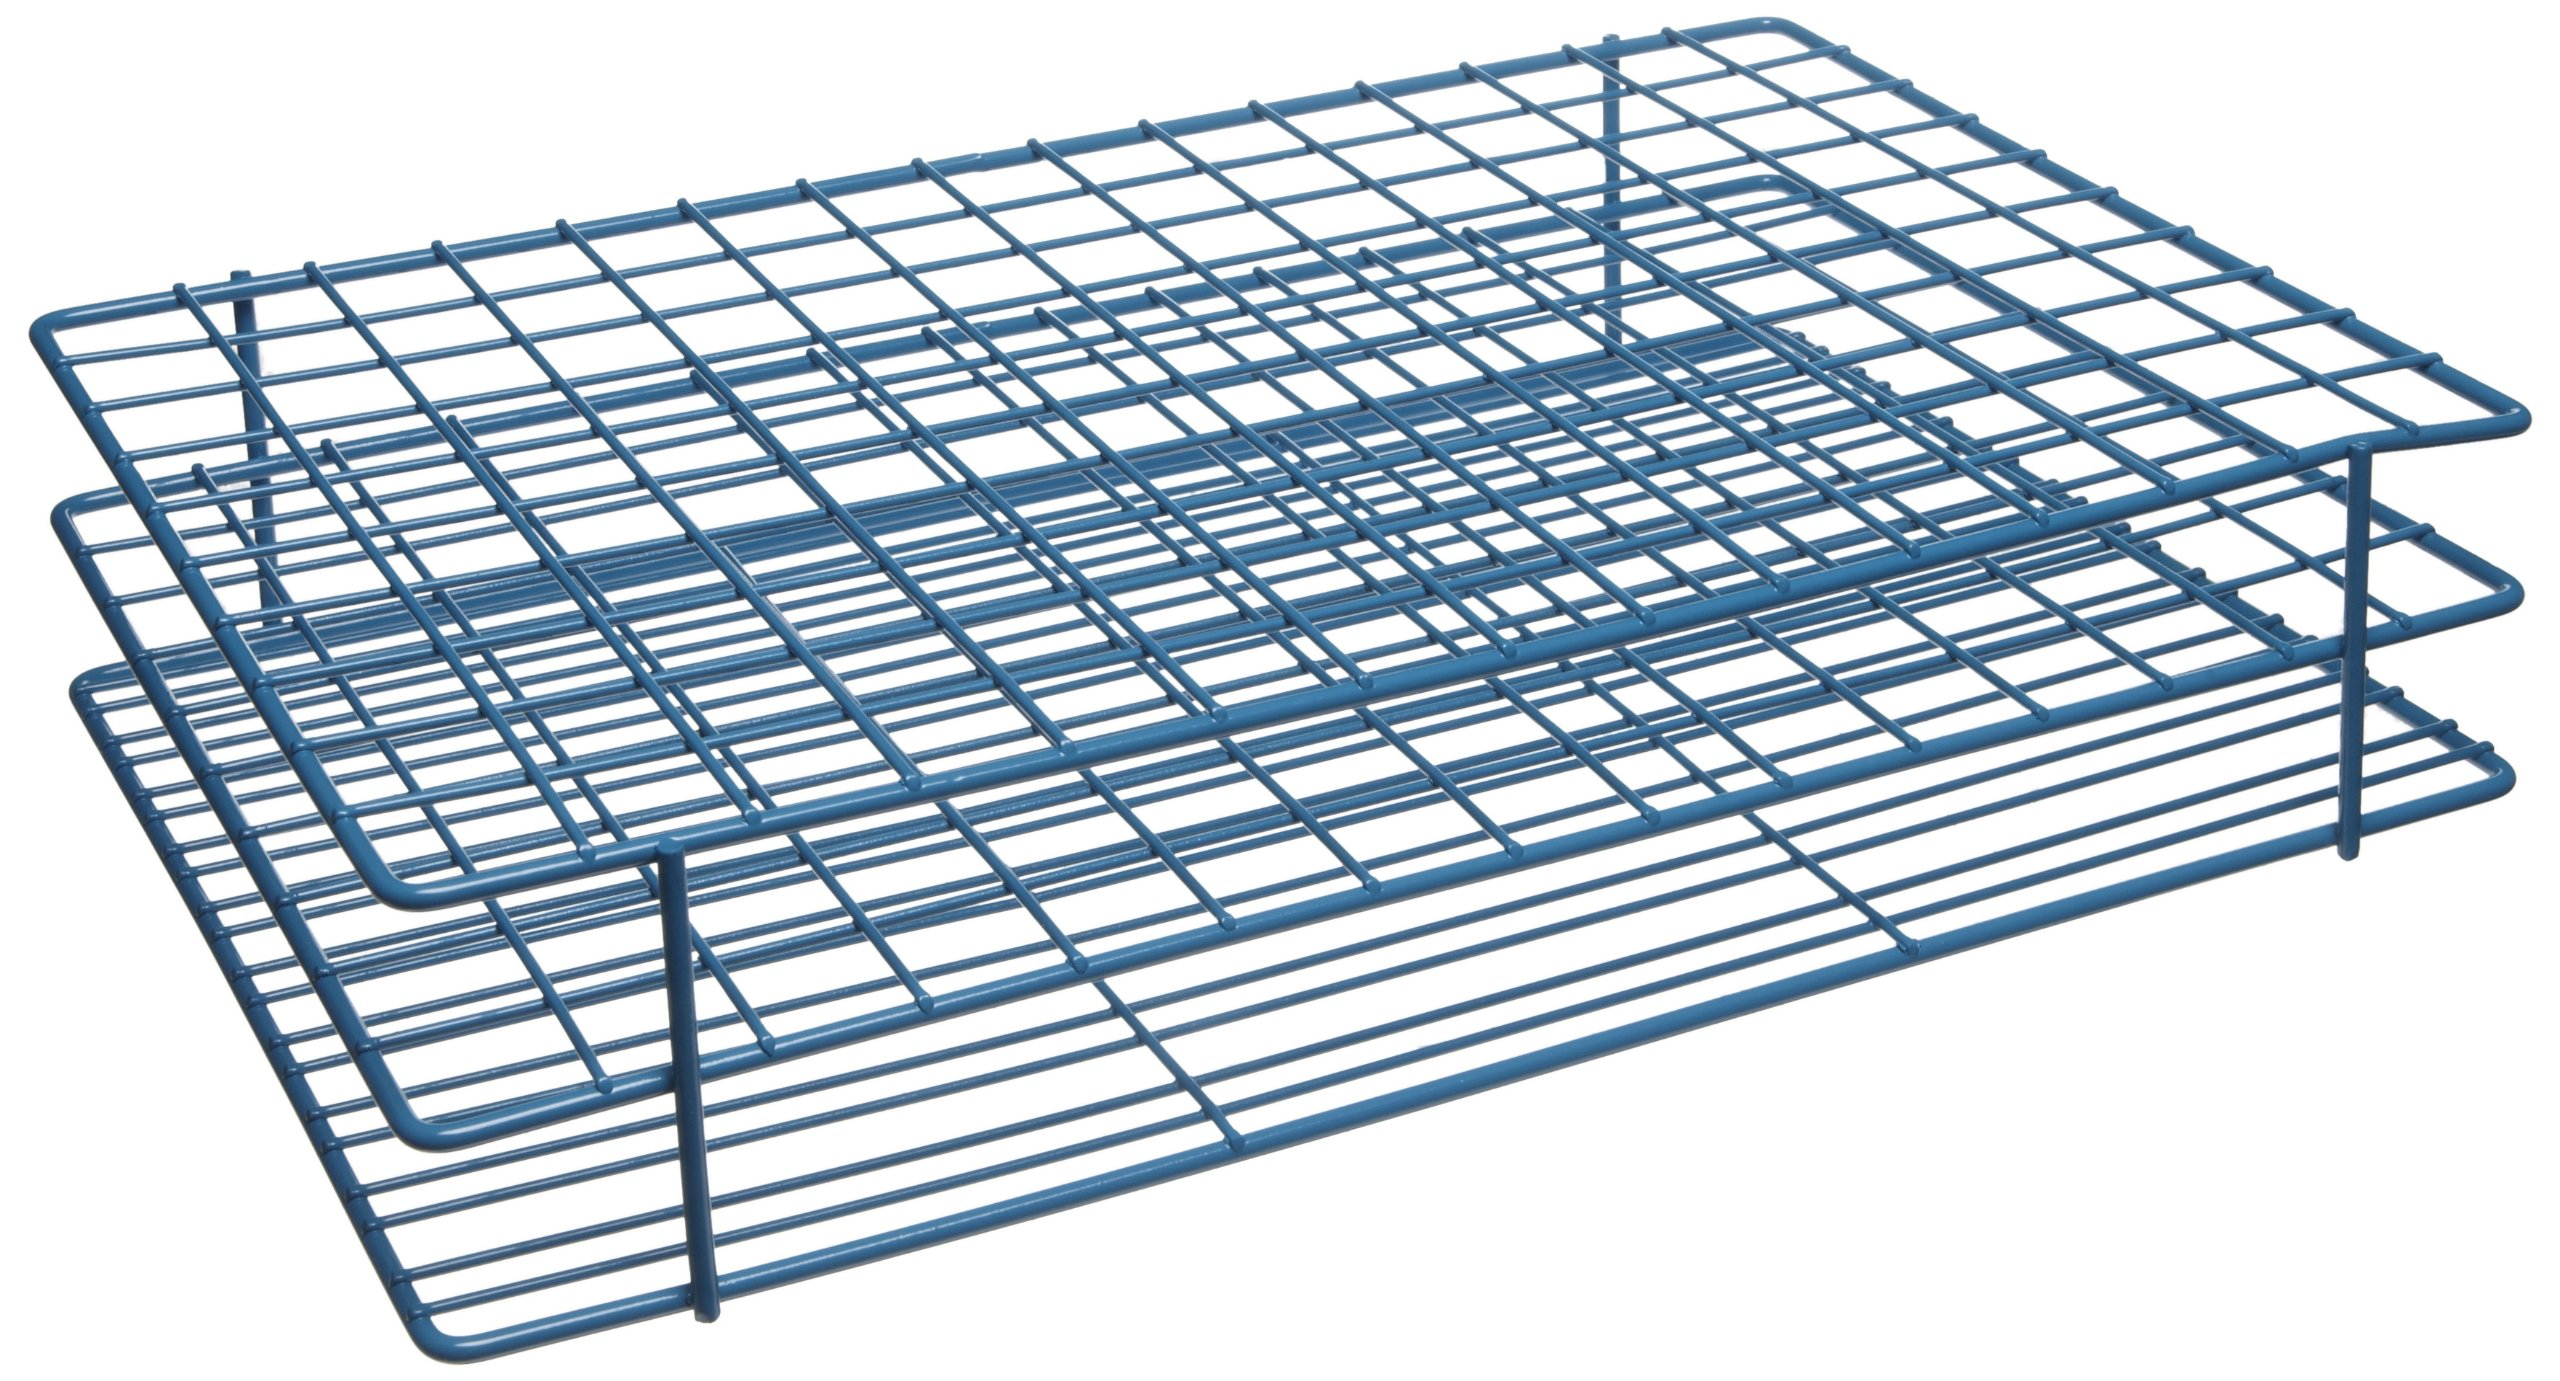 Bel-Art F18760-1150 Poxygrid Test Tube Rack; 15-16mm, 150 Places, 12 x 8¼ x 2½ in.